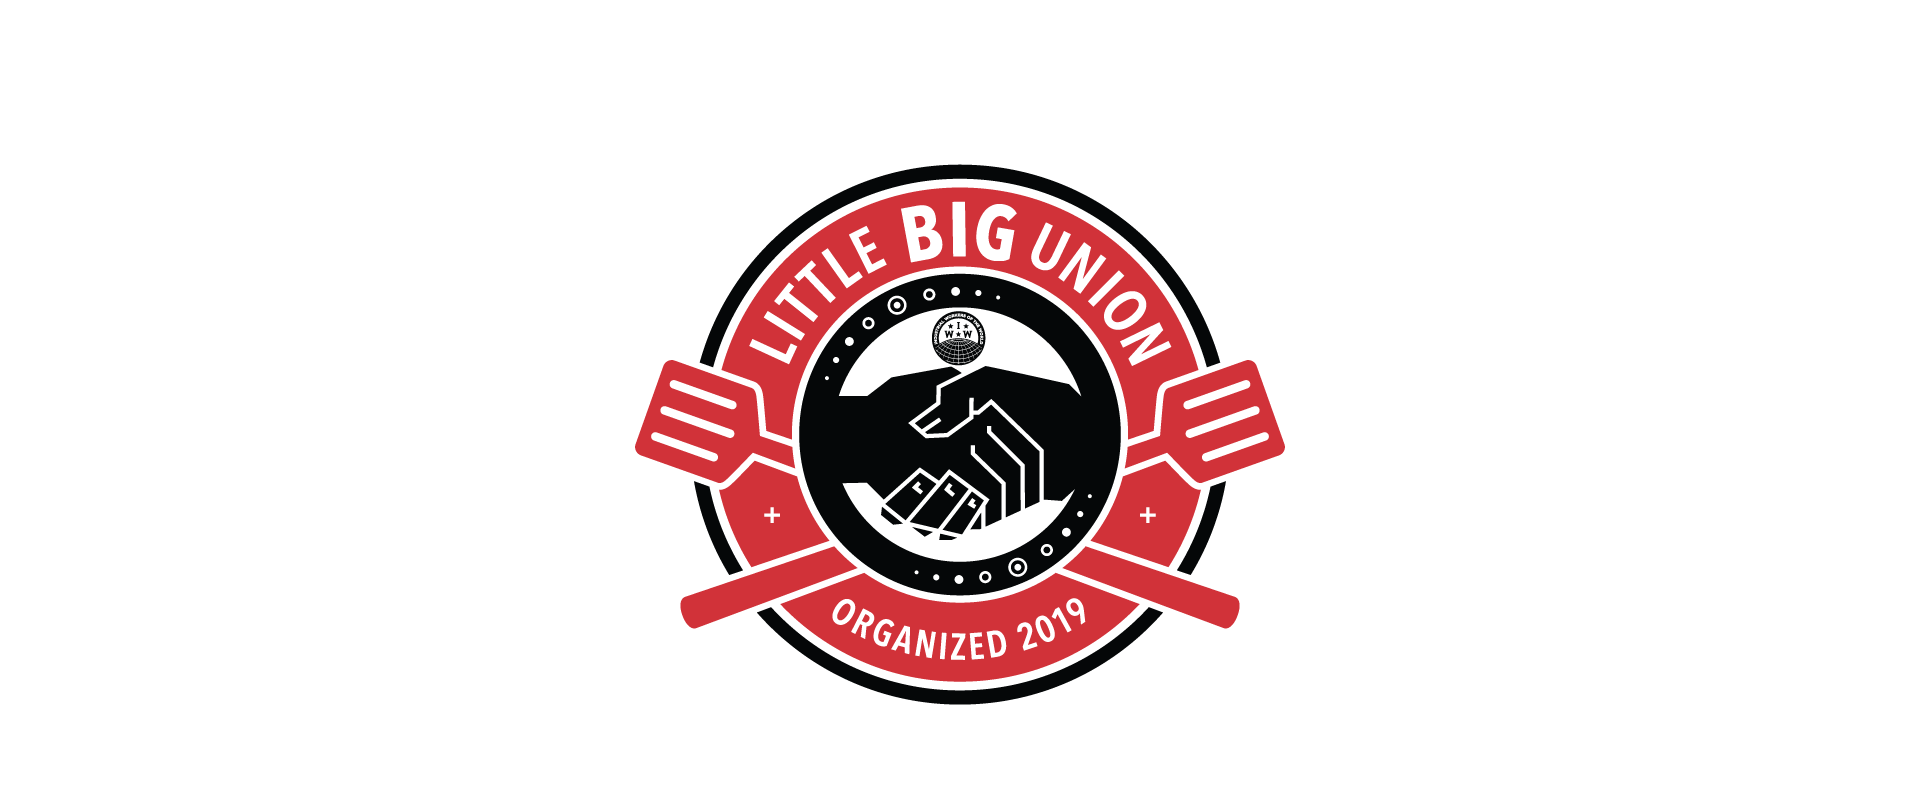 Little Big Union